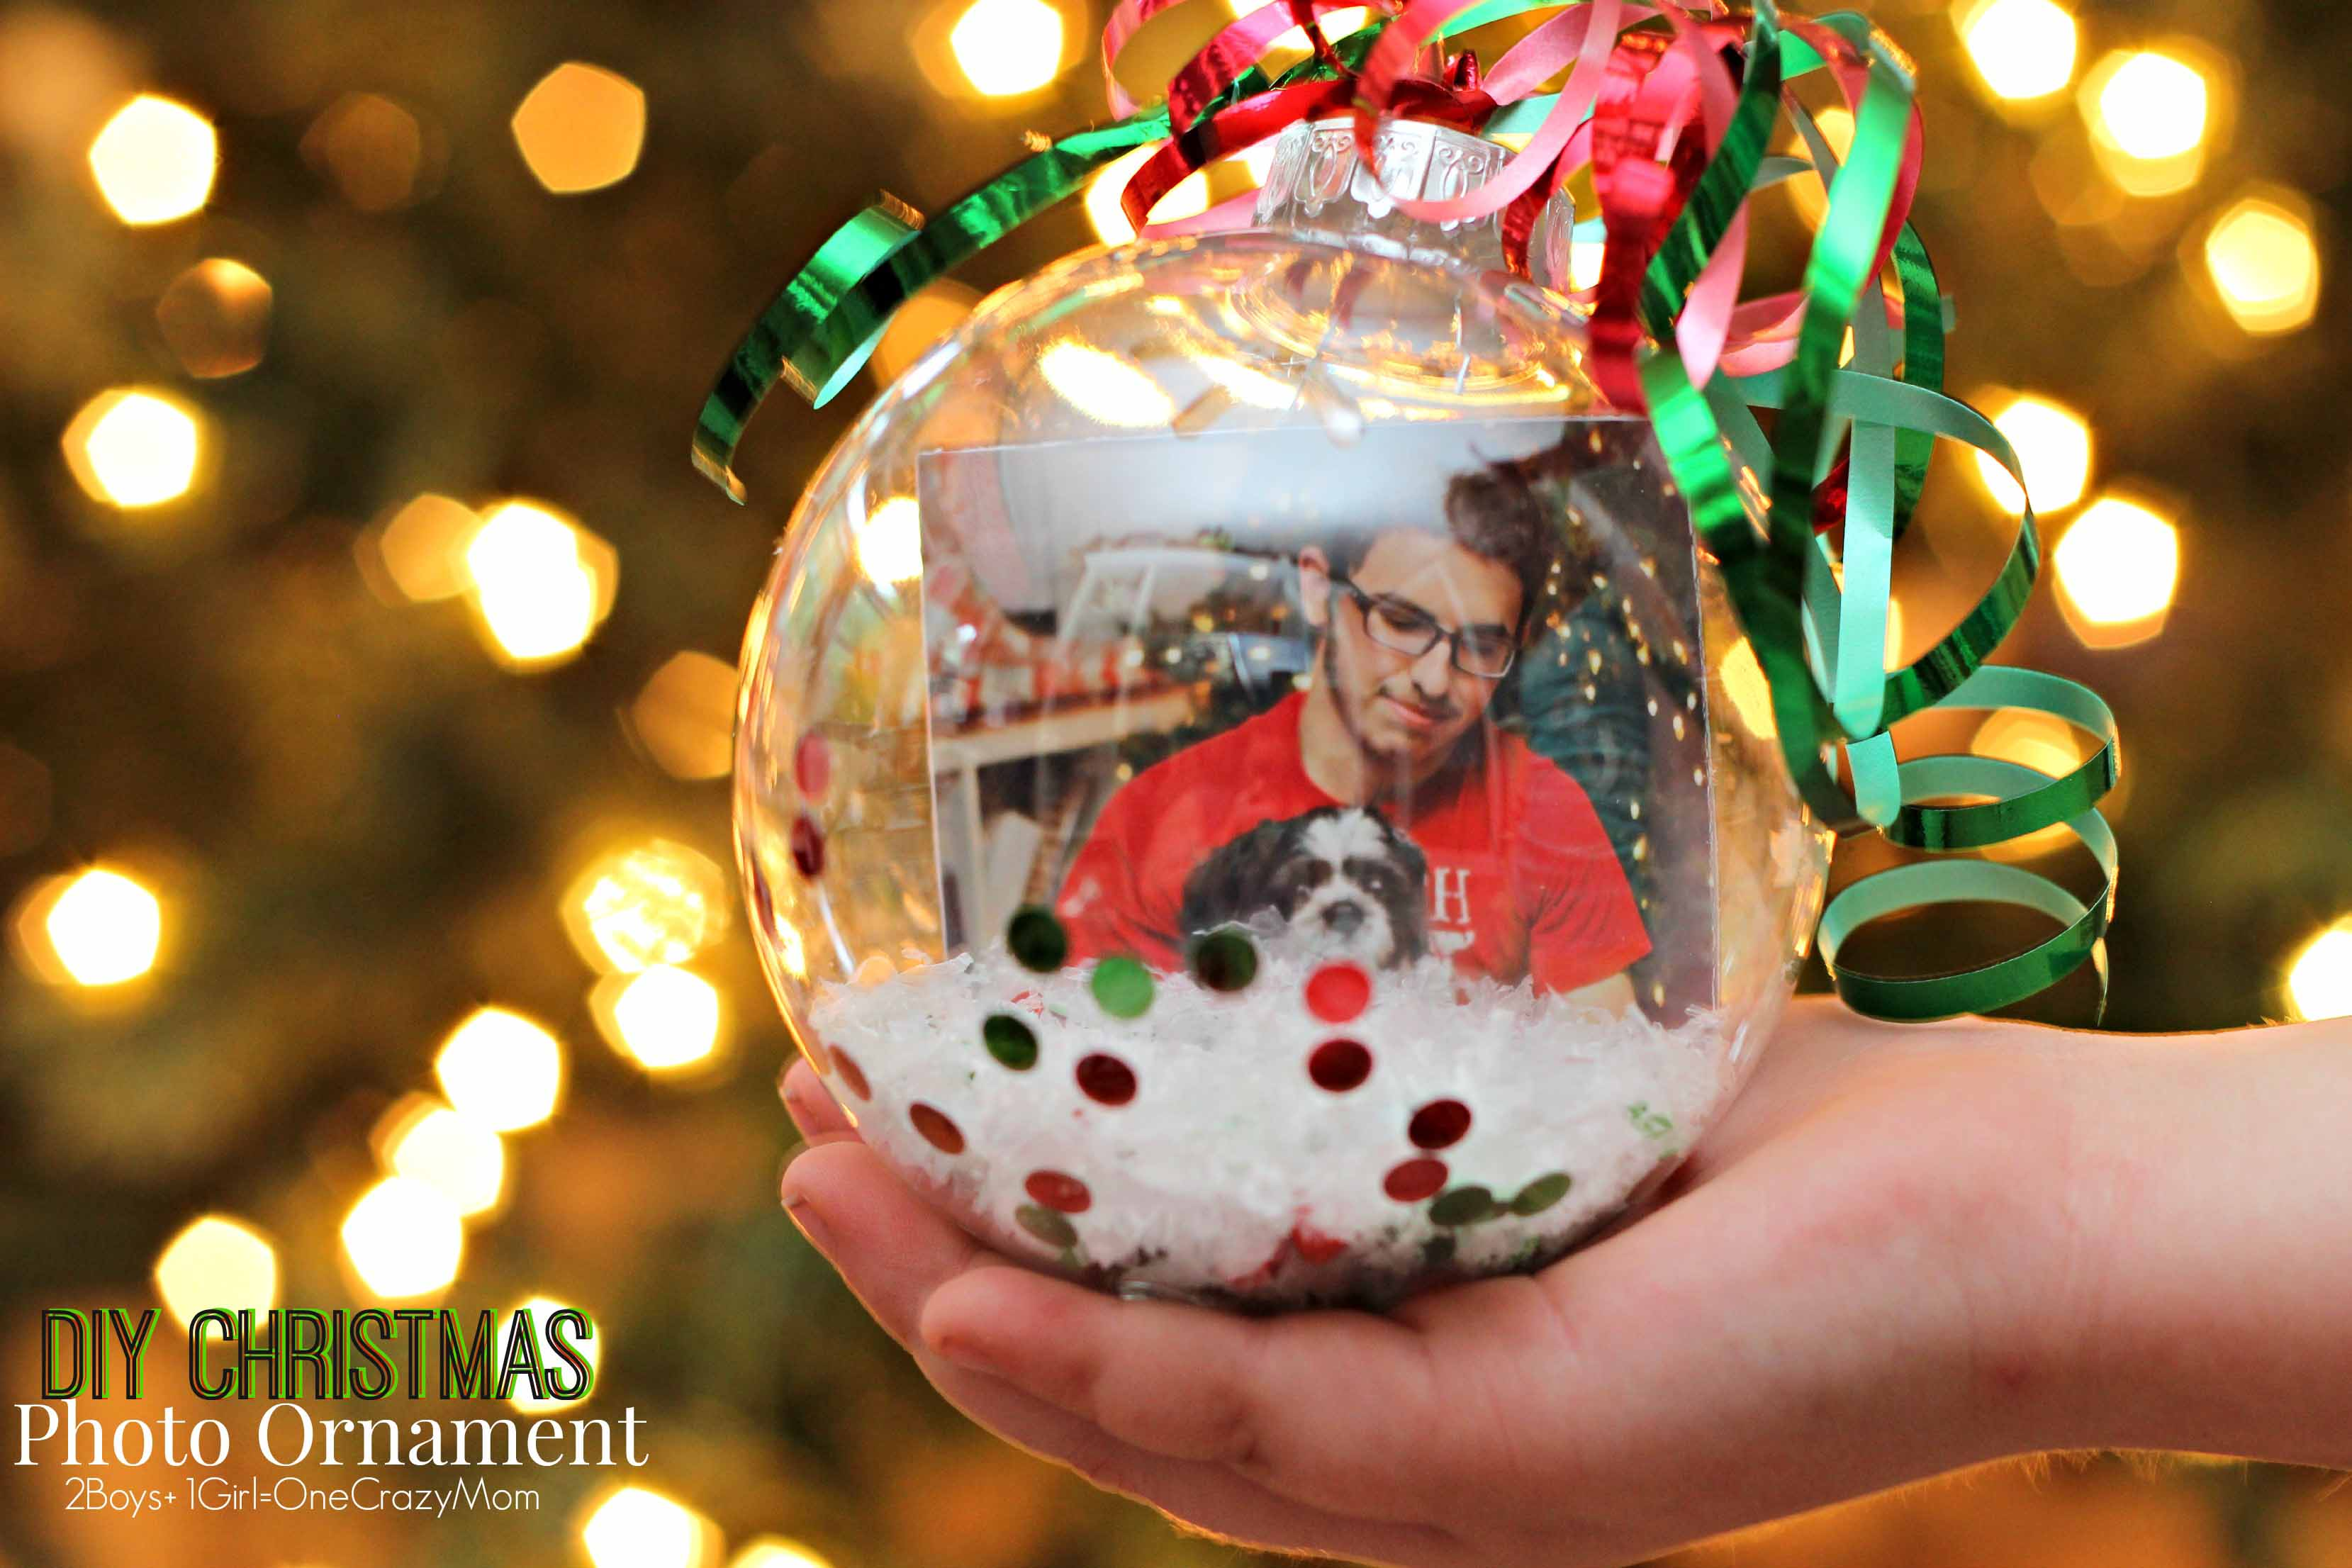 make your own christmas ornaments diy photo ornaments are the gift idea 12050